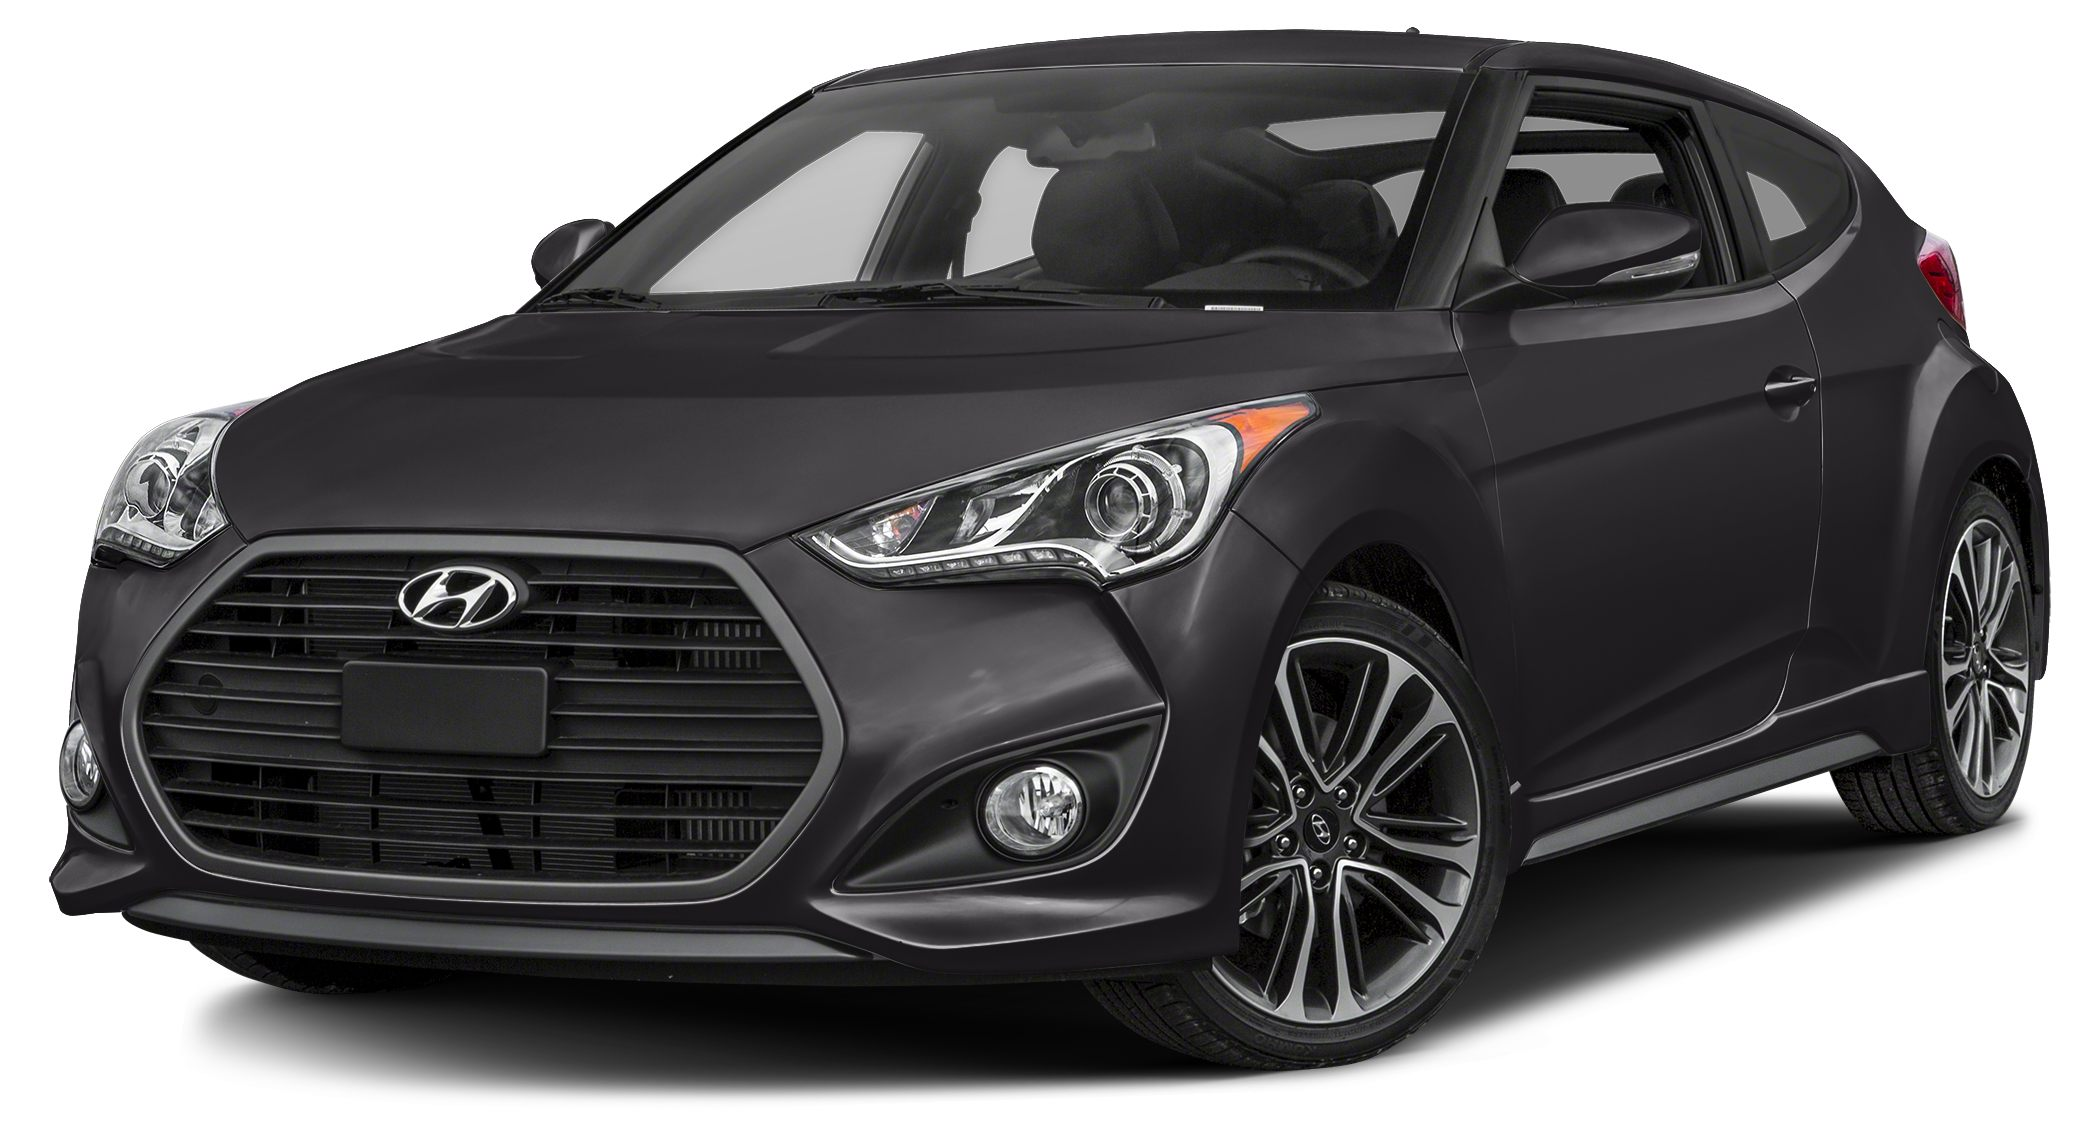 2016 Hyundai Veloster Turbo USB Port ONE OWNER One Year Free Maintanence and Clean Carfax